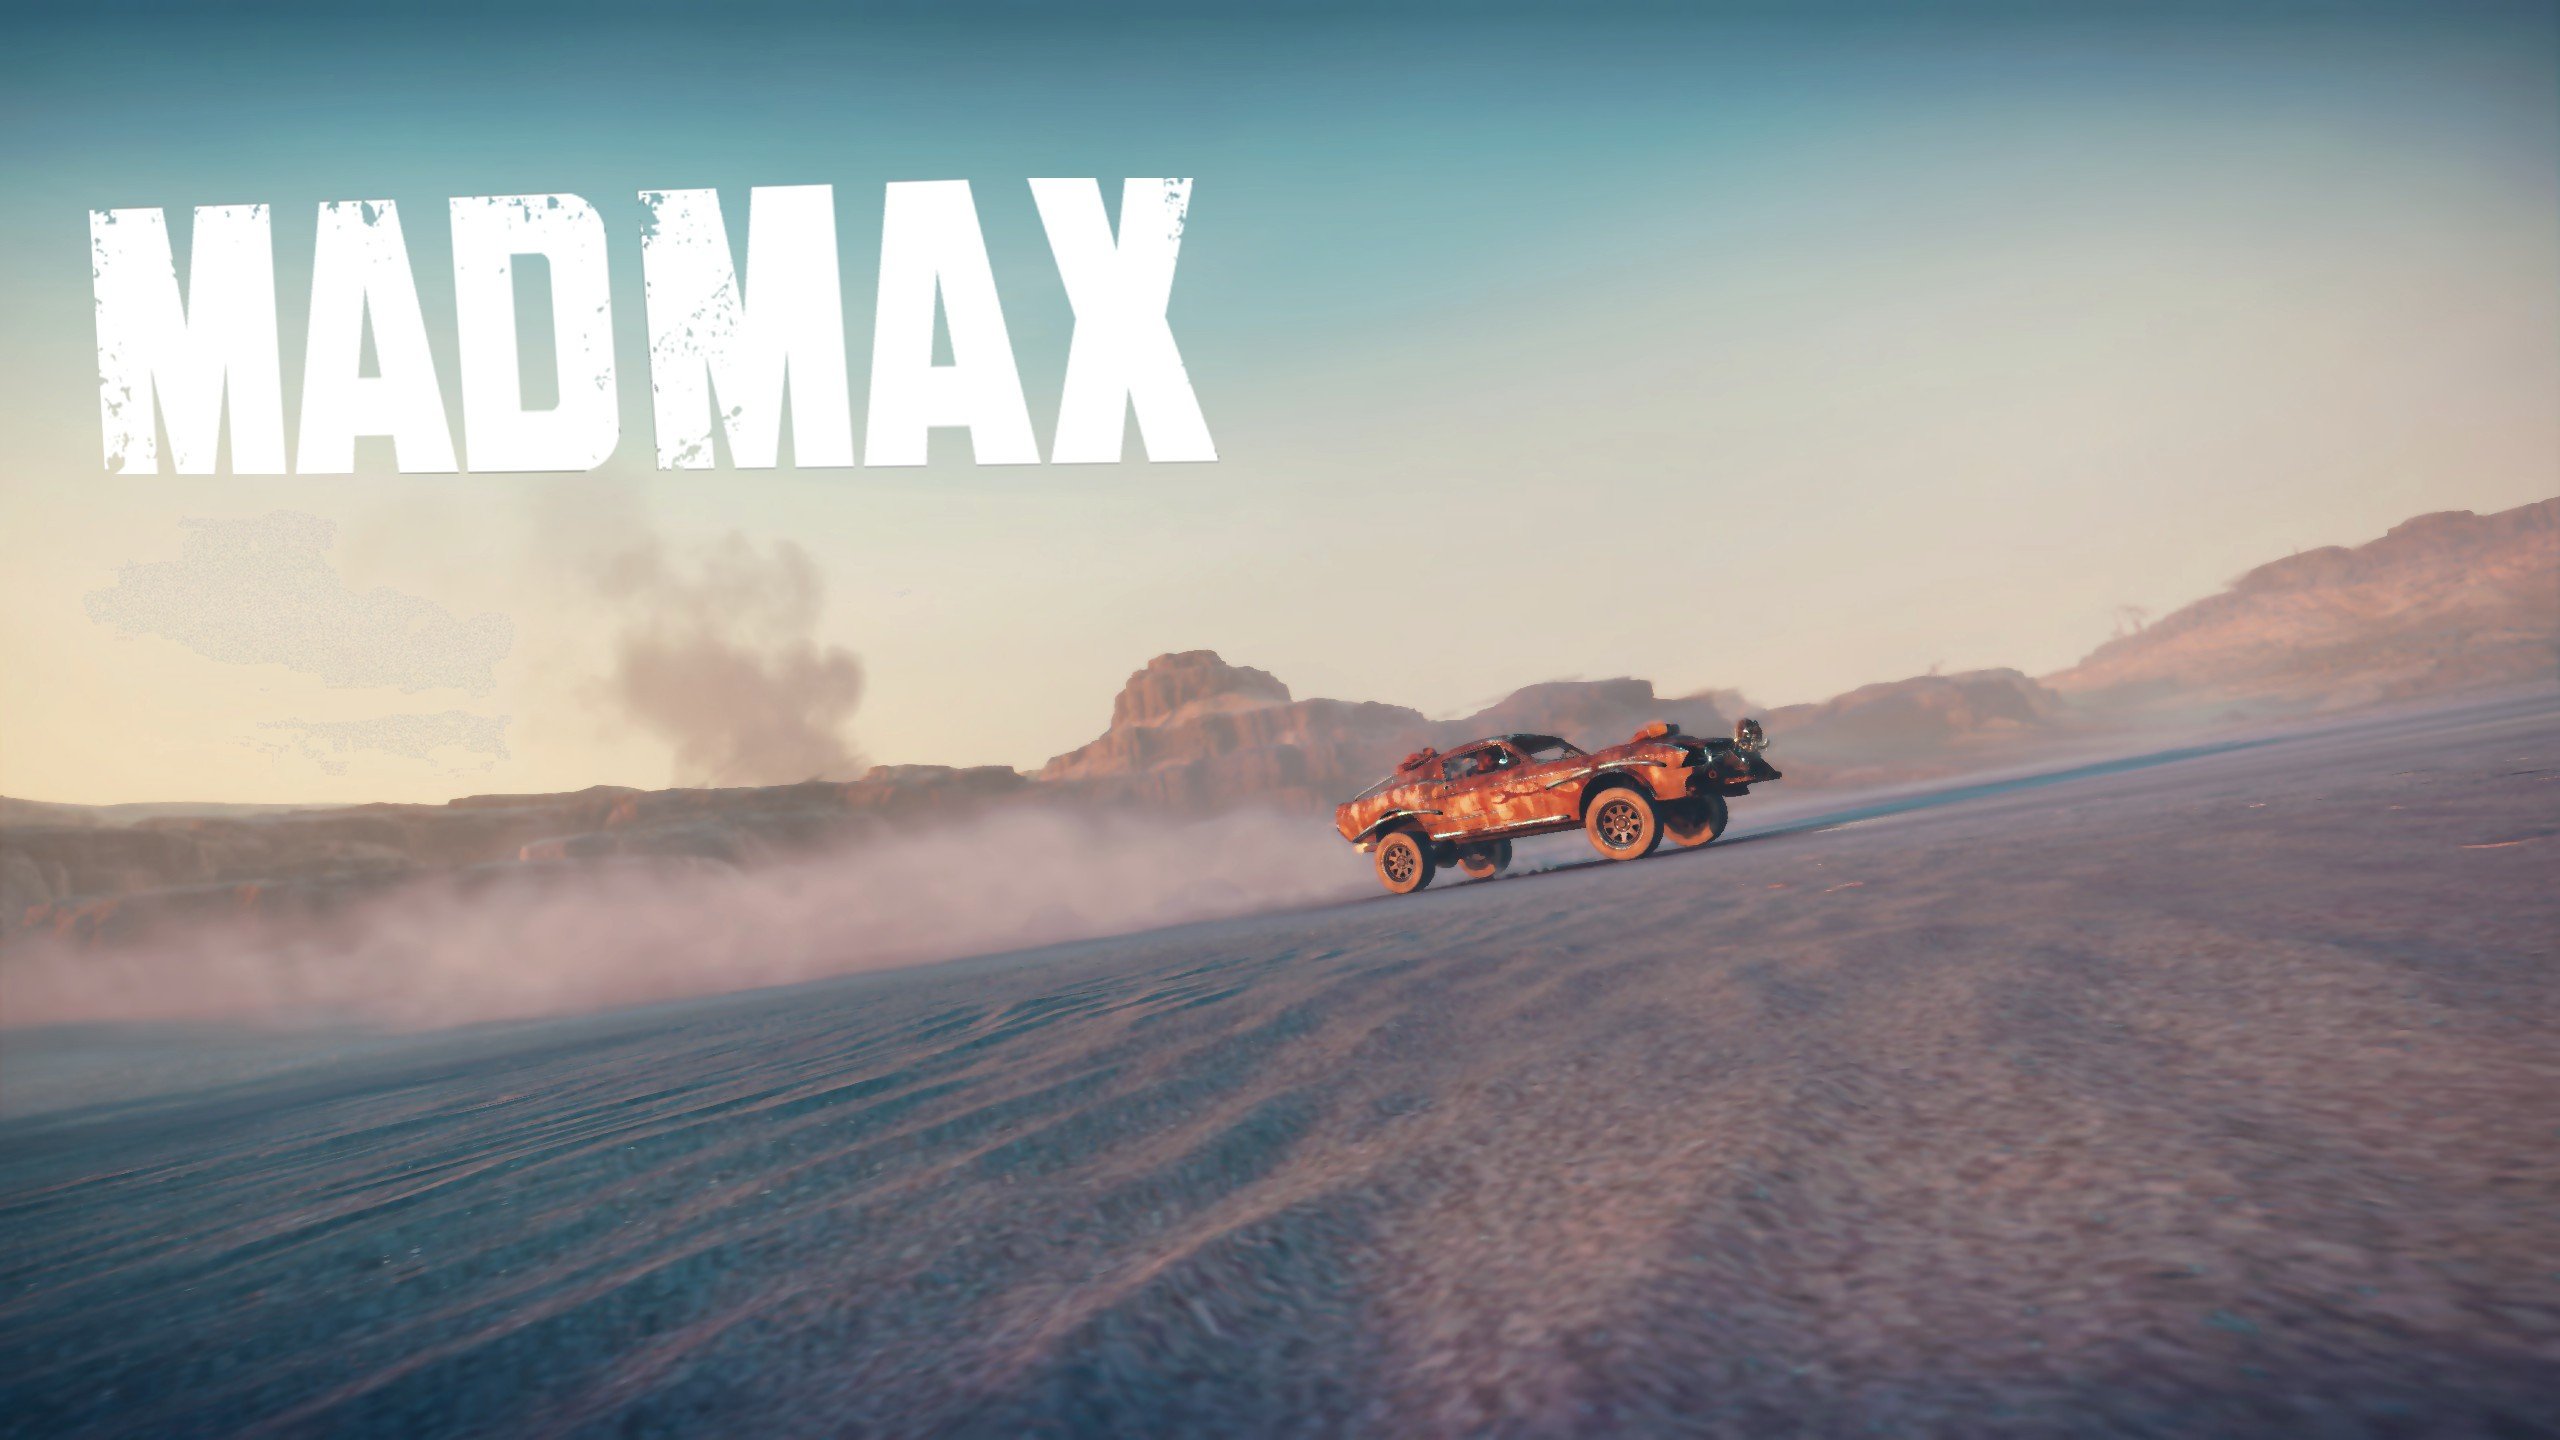 Mad max hd games 4k wallpapers images backgrounds photos and mad max voltagebd Image collections